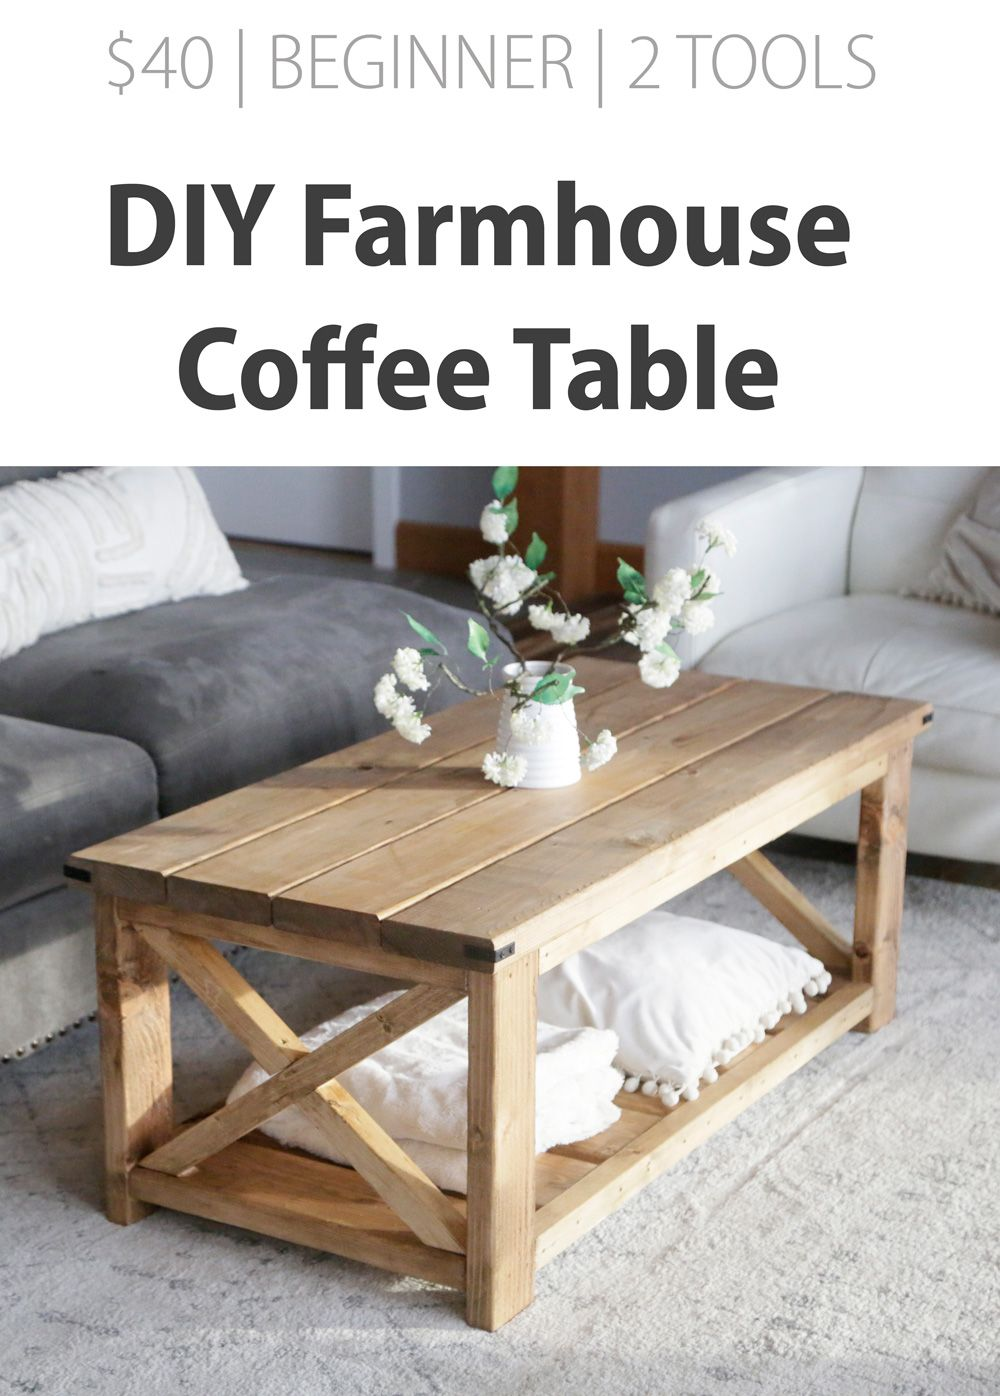 Farmhouse Coffee Table Beginner Under 40 Diy Farmhouse Coffee Table Coffee Table Farmhouse Diy Furniture Projects